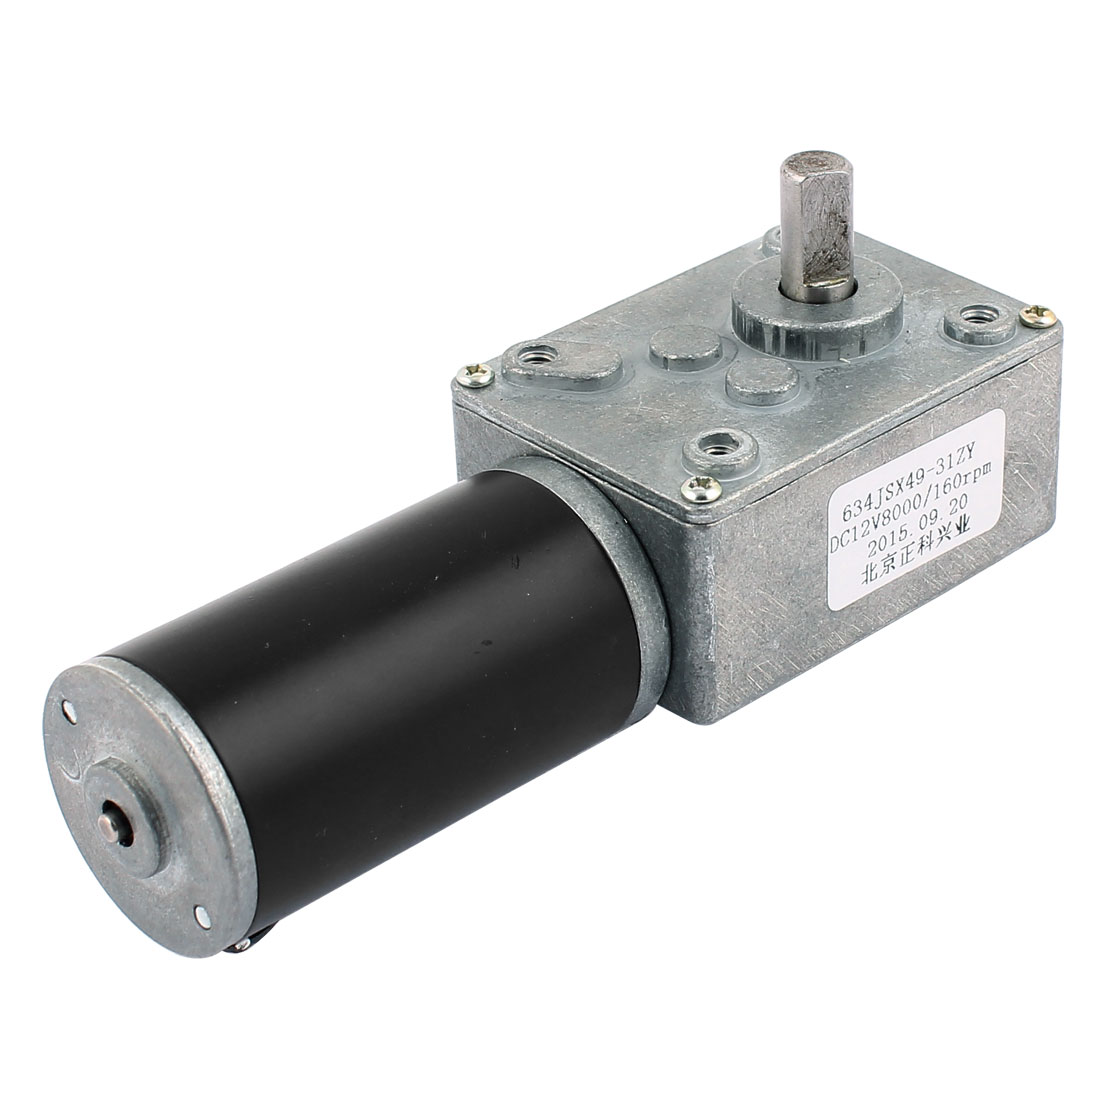 DC 12V 160RPM 8mmx14mm D-Shape Shaft Electric Power Turbo Worm Geared Motor